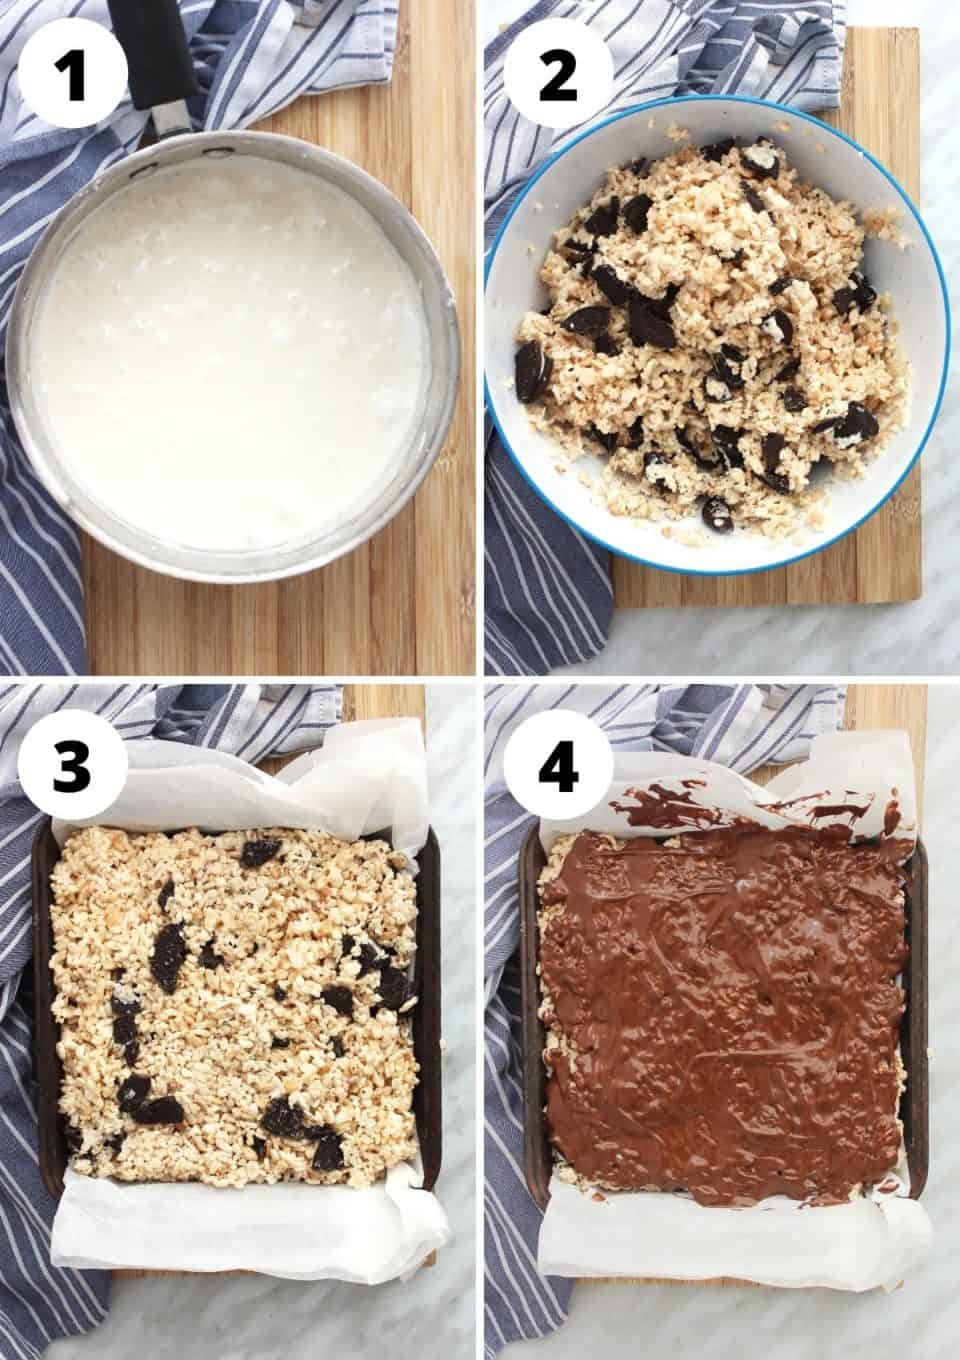 Four step by step photos showing how to make the rice krispy treats